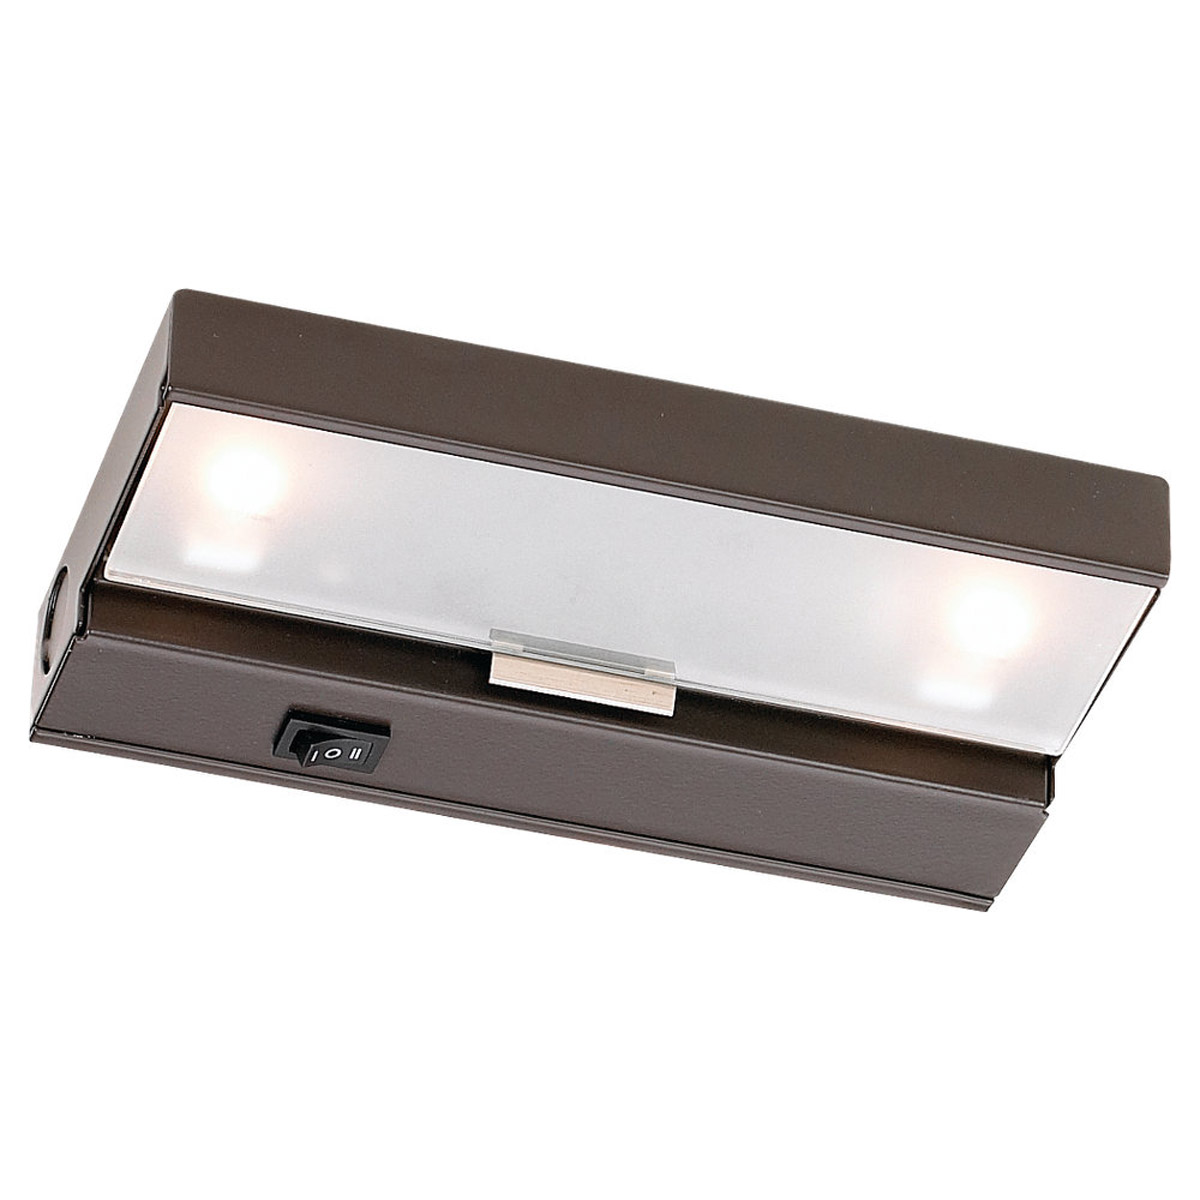 Sea Gull Lighting Ambiance 2 Light Undercabinet Xenon in Antique Bronze 98018-71